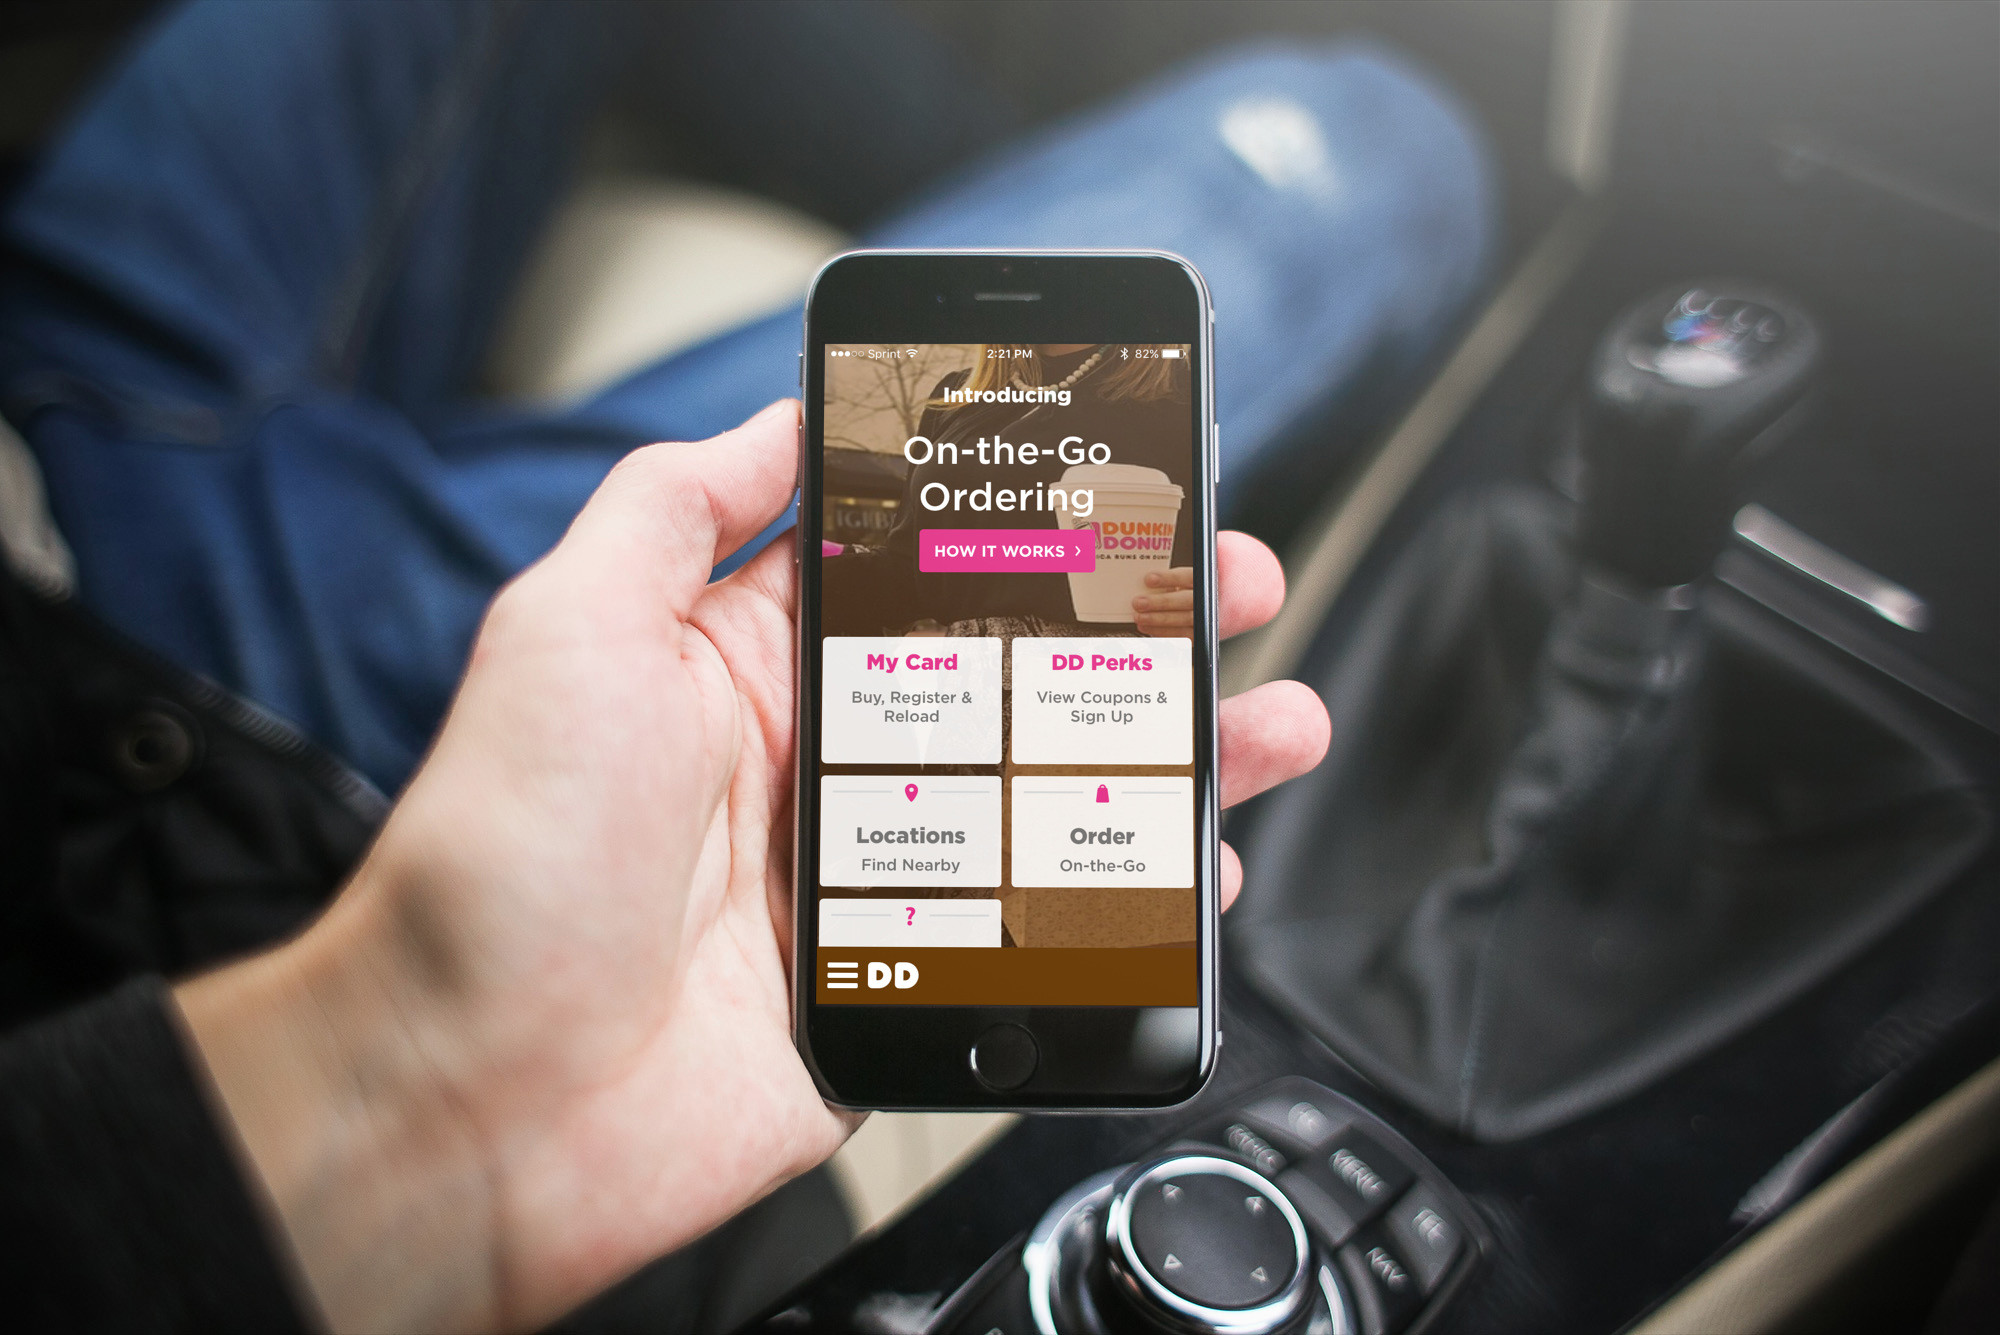 Get your Dunkin' Donuts with DD On-the-Go Ordering Portland